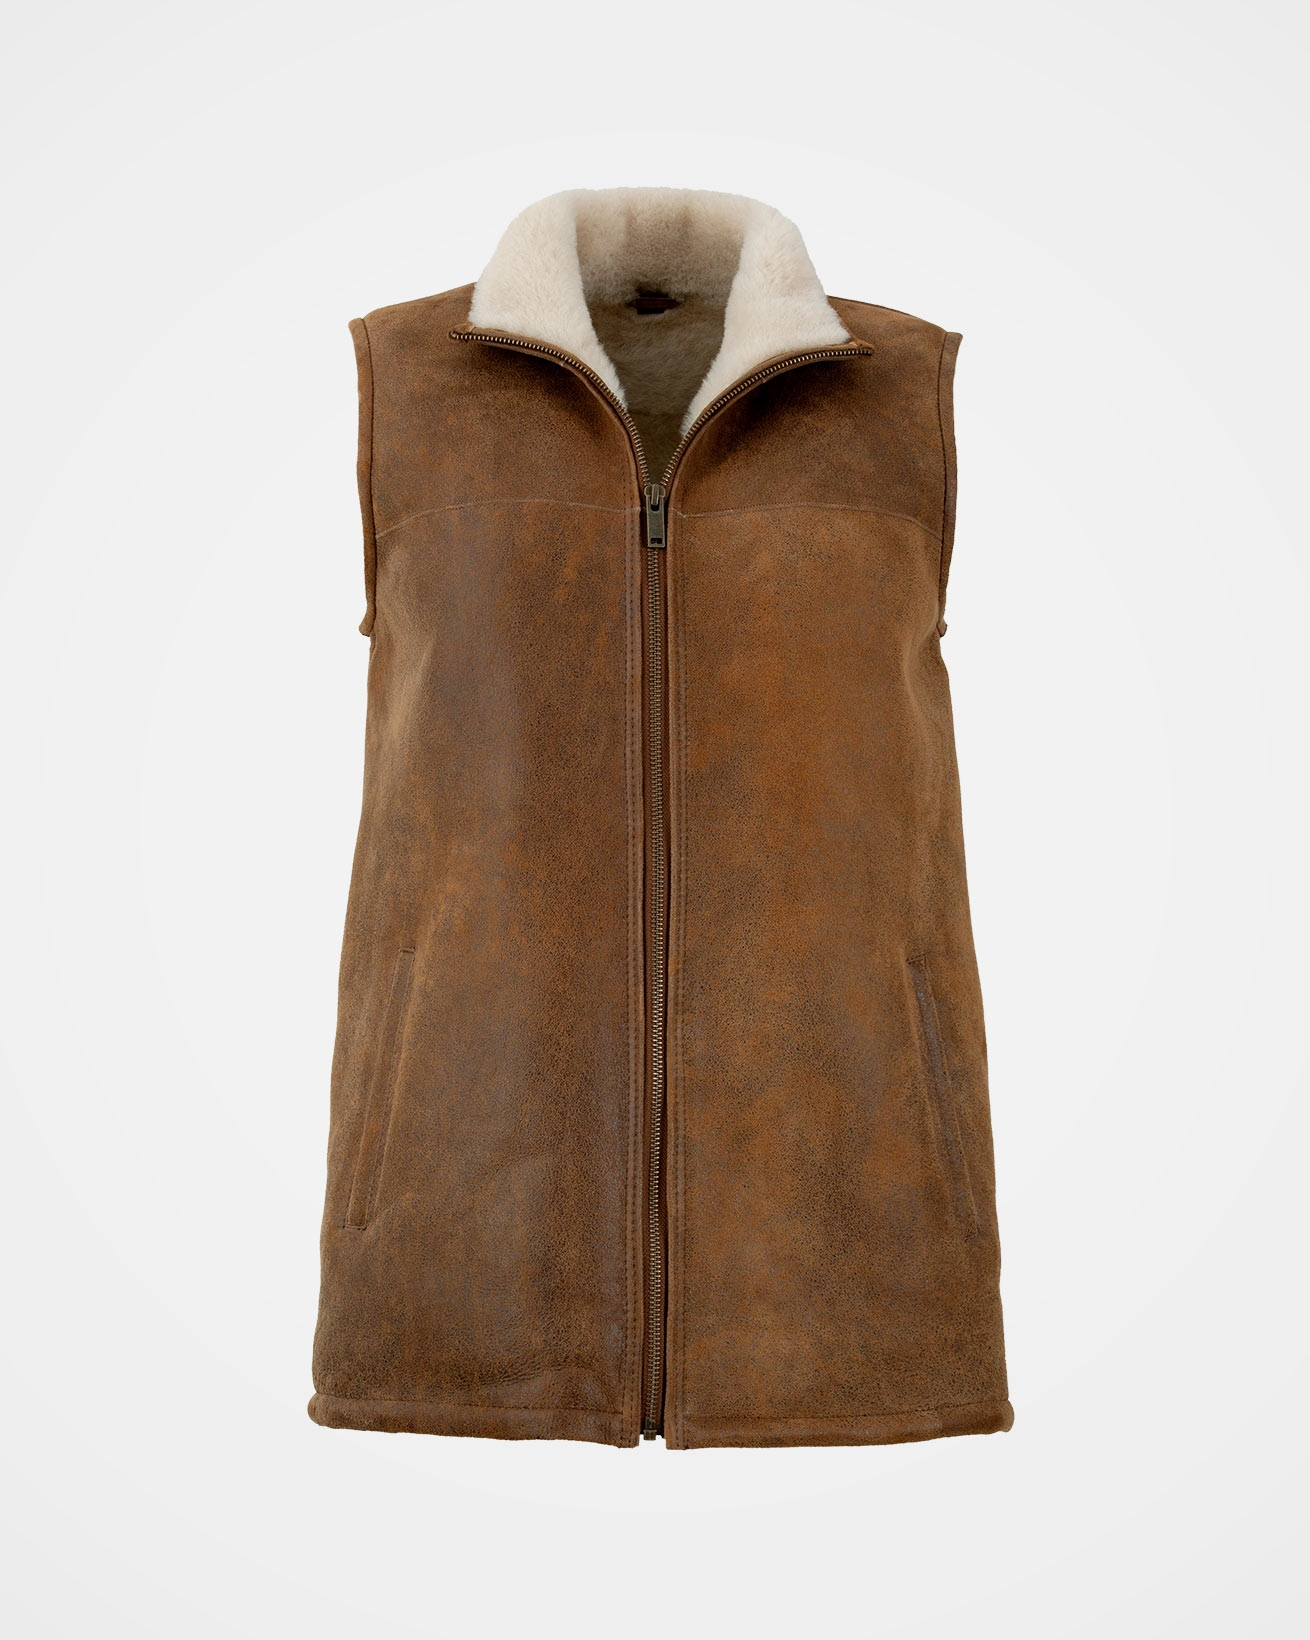 7624_sheepskin-bodywarmer_walnut_front2.jpg